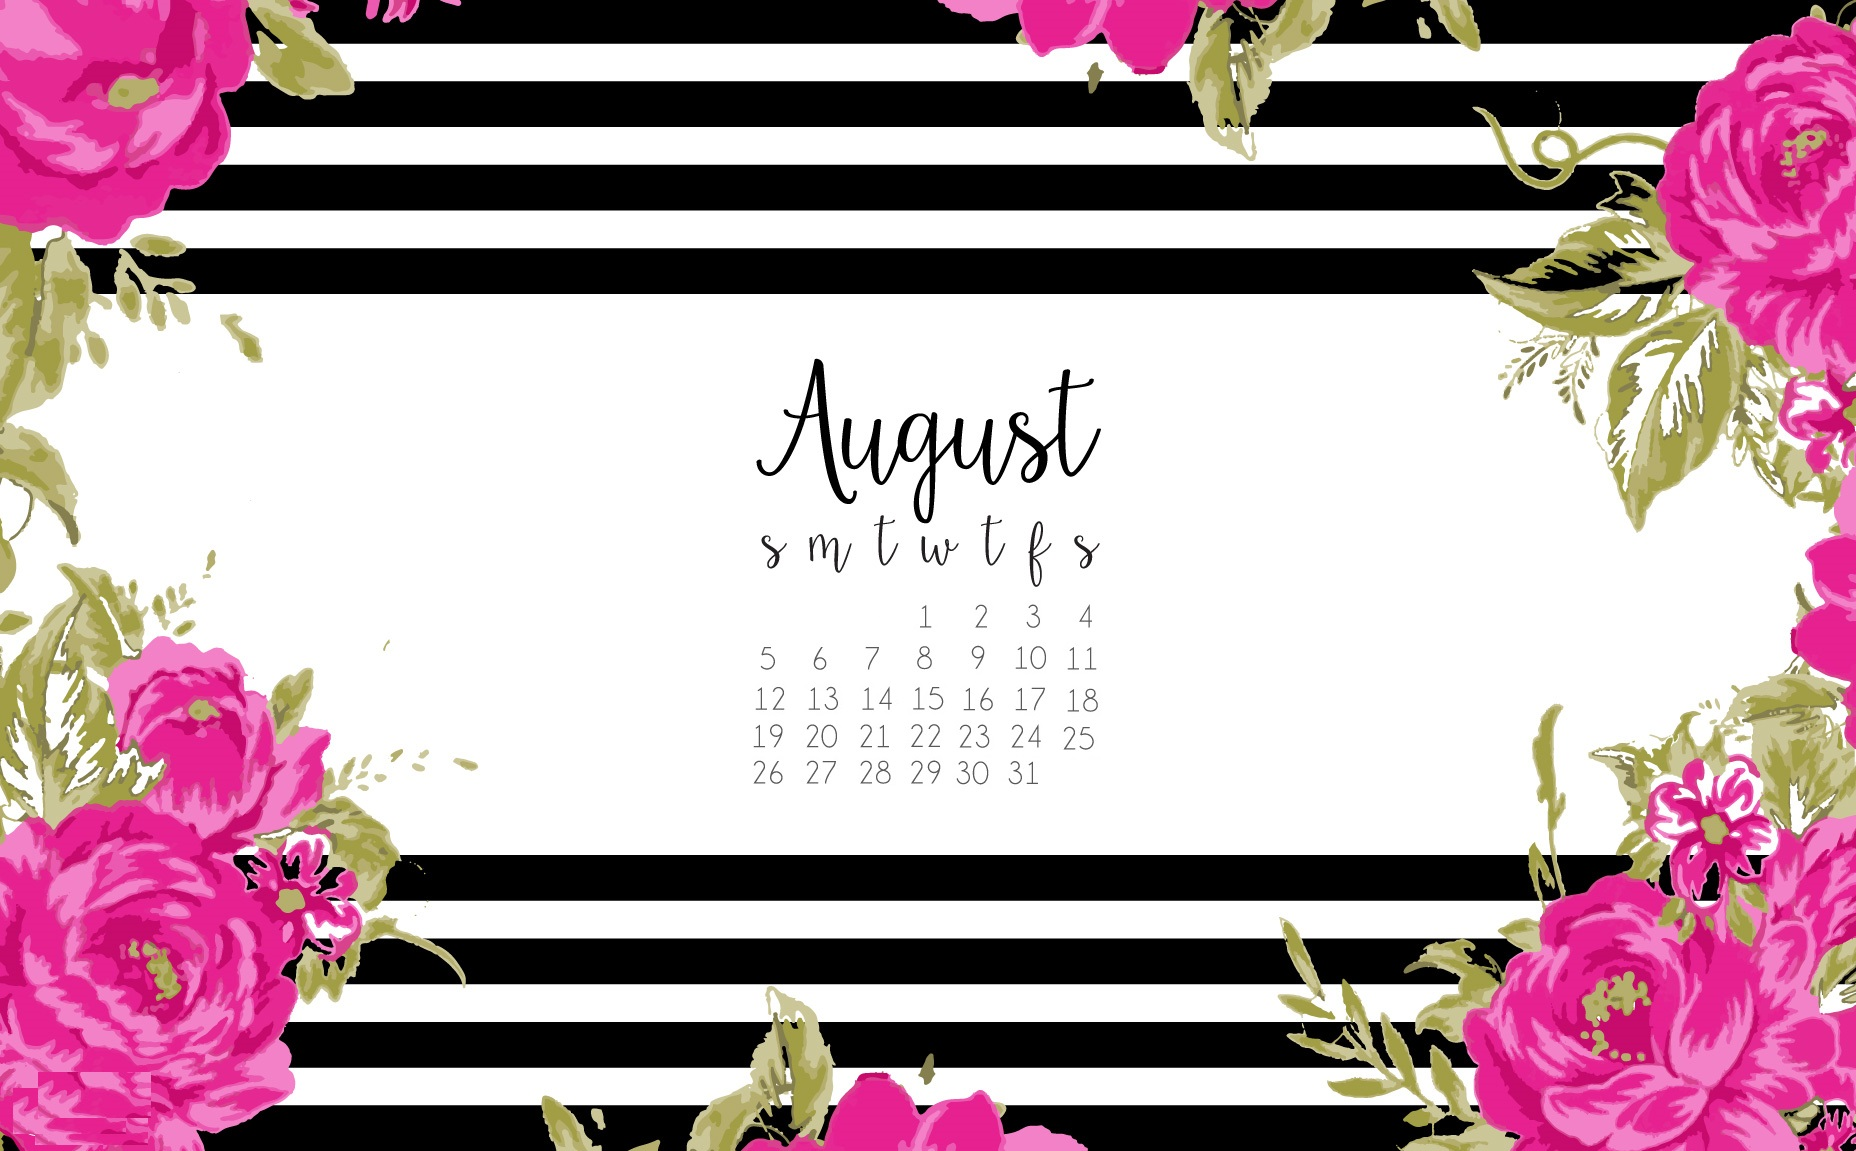 August 2018 Design Calendar Wallpapers